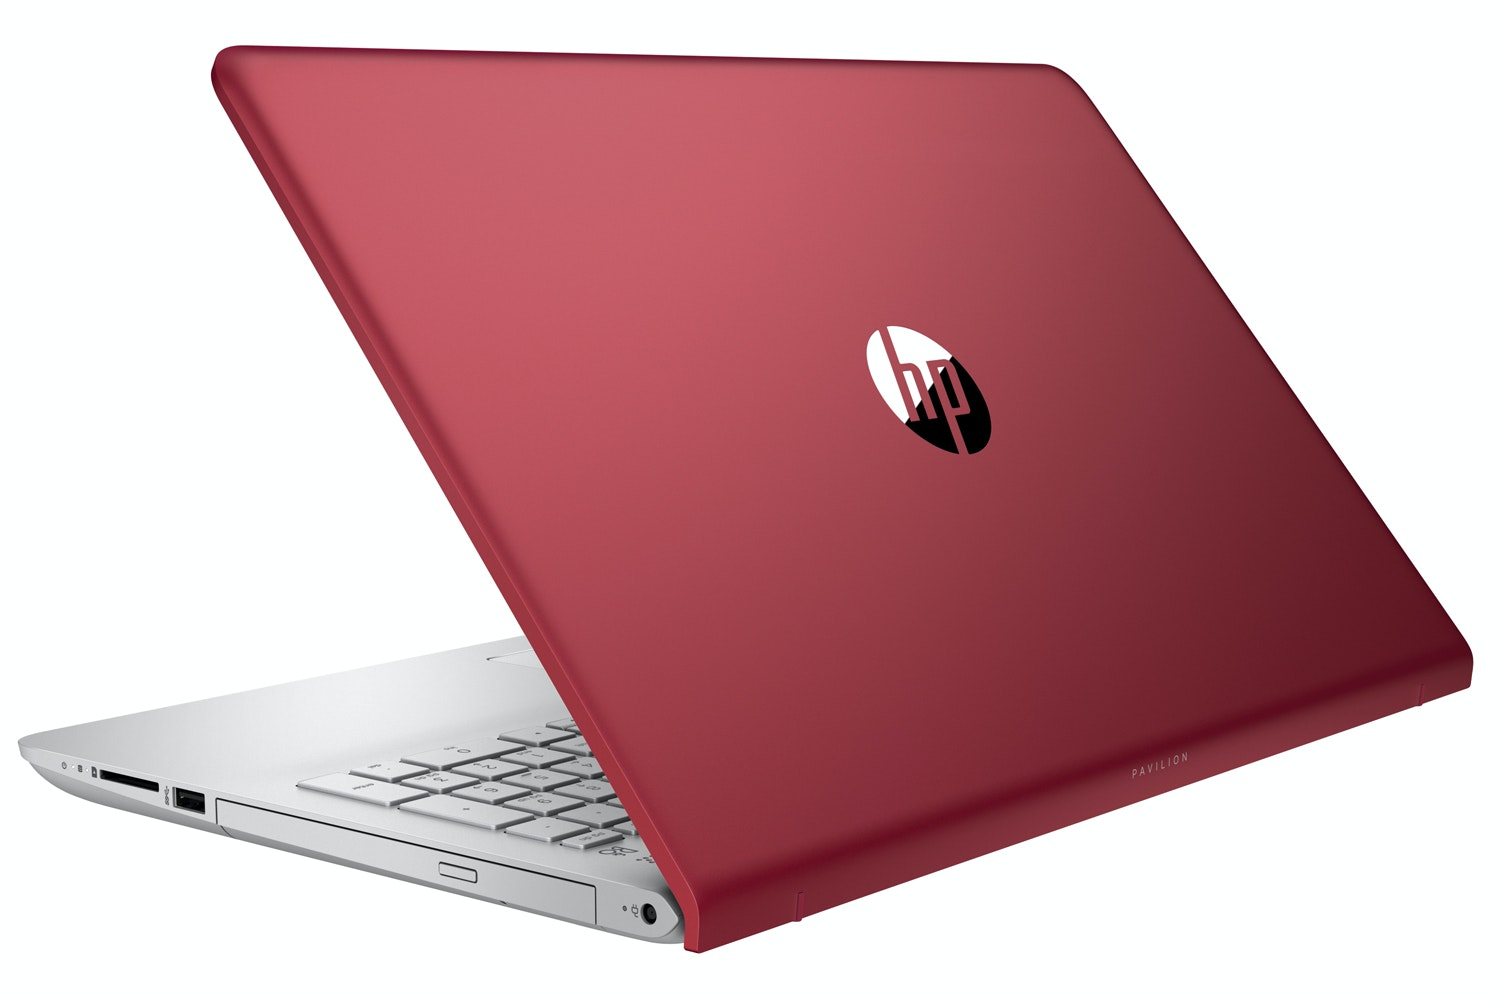 HP Pavilion 15.6"